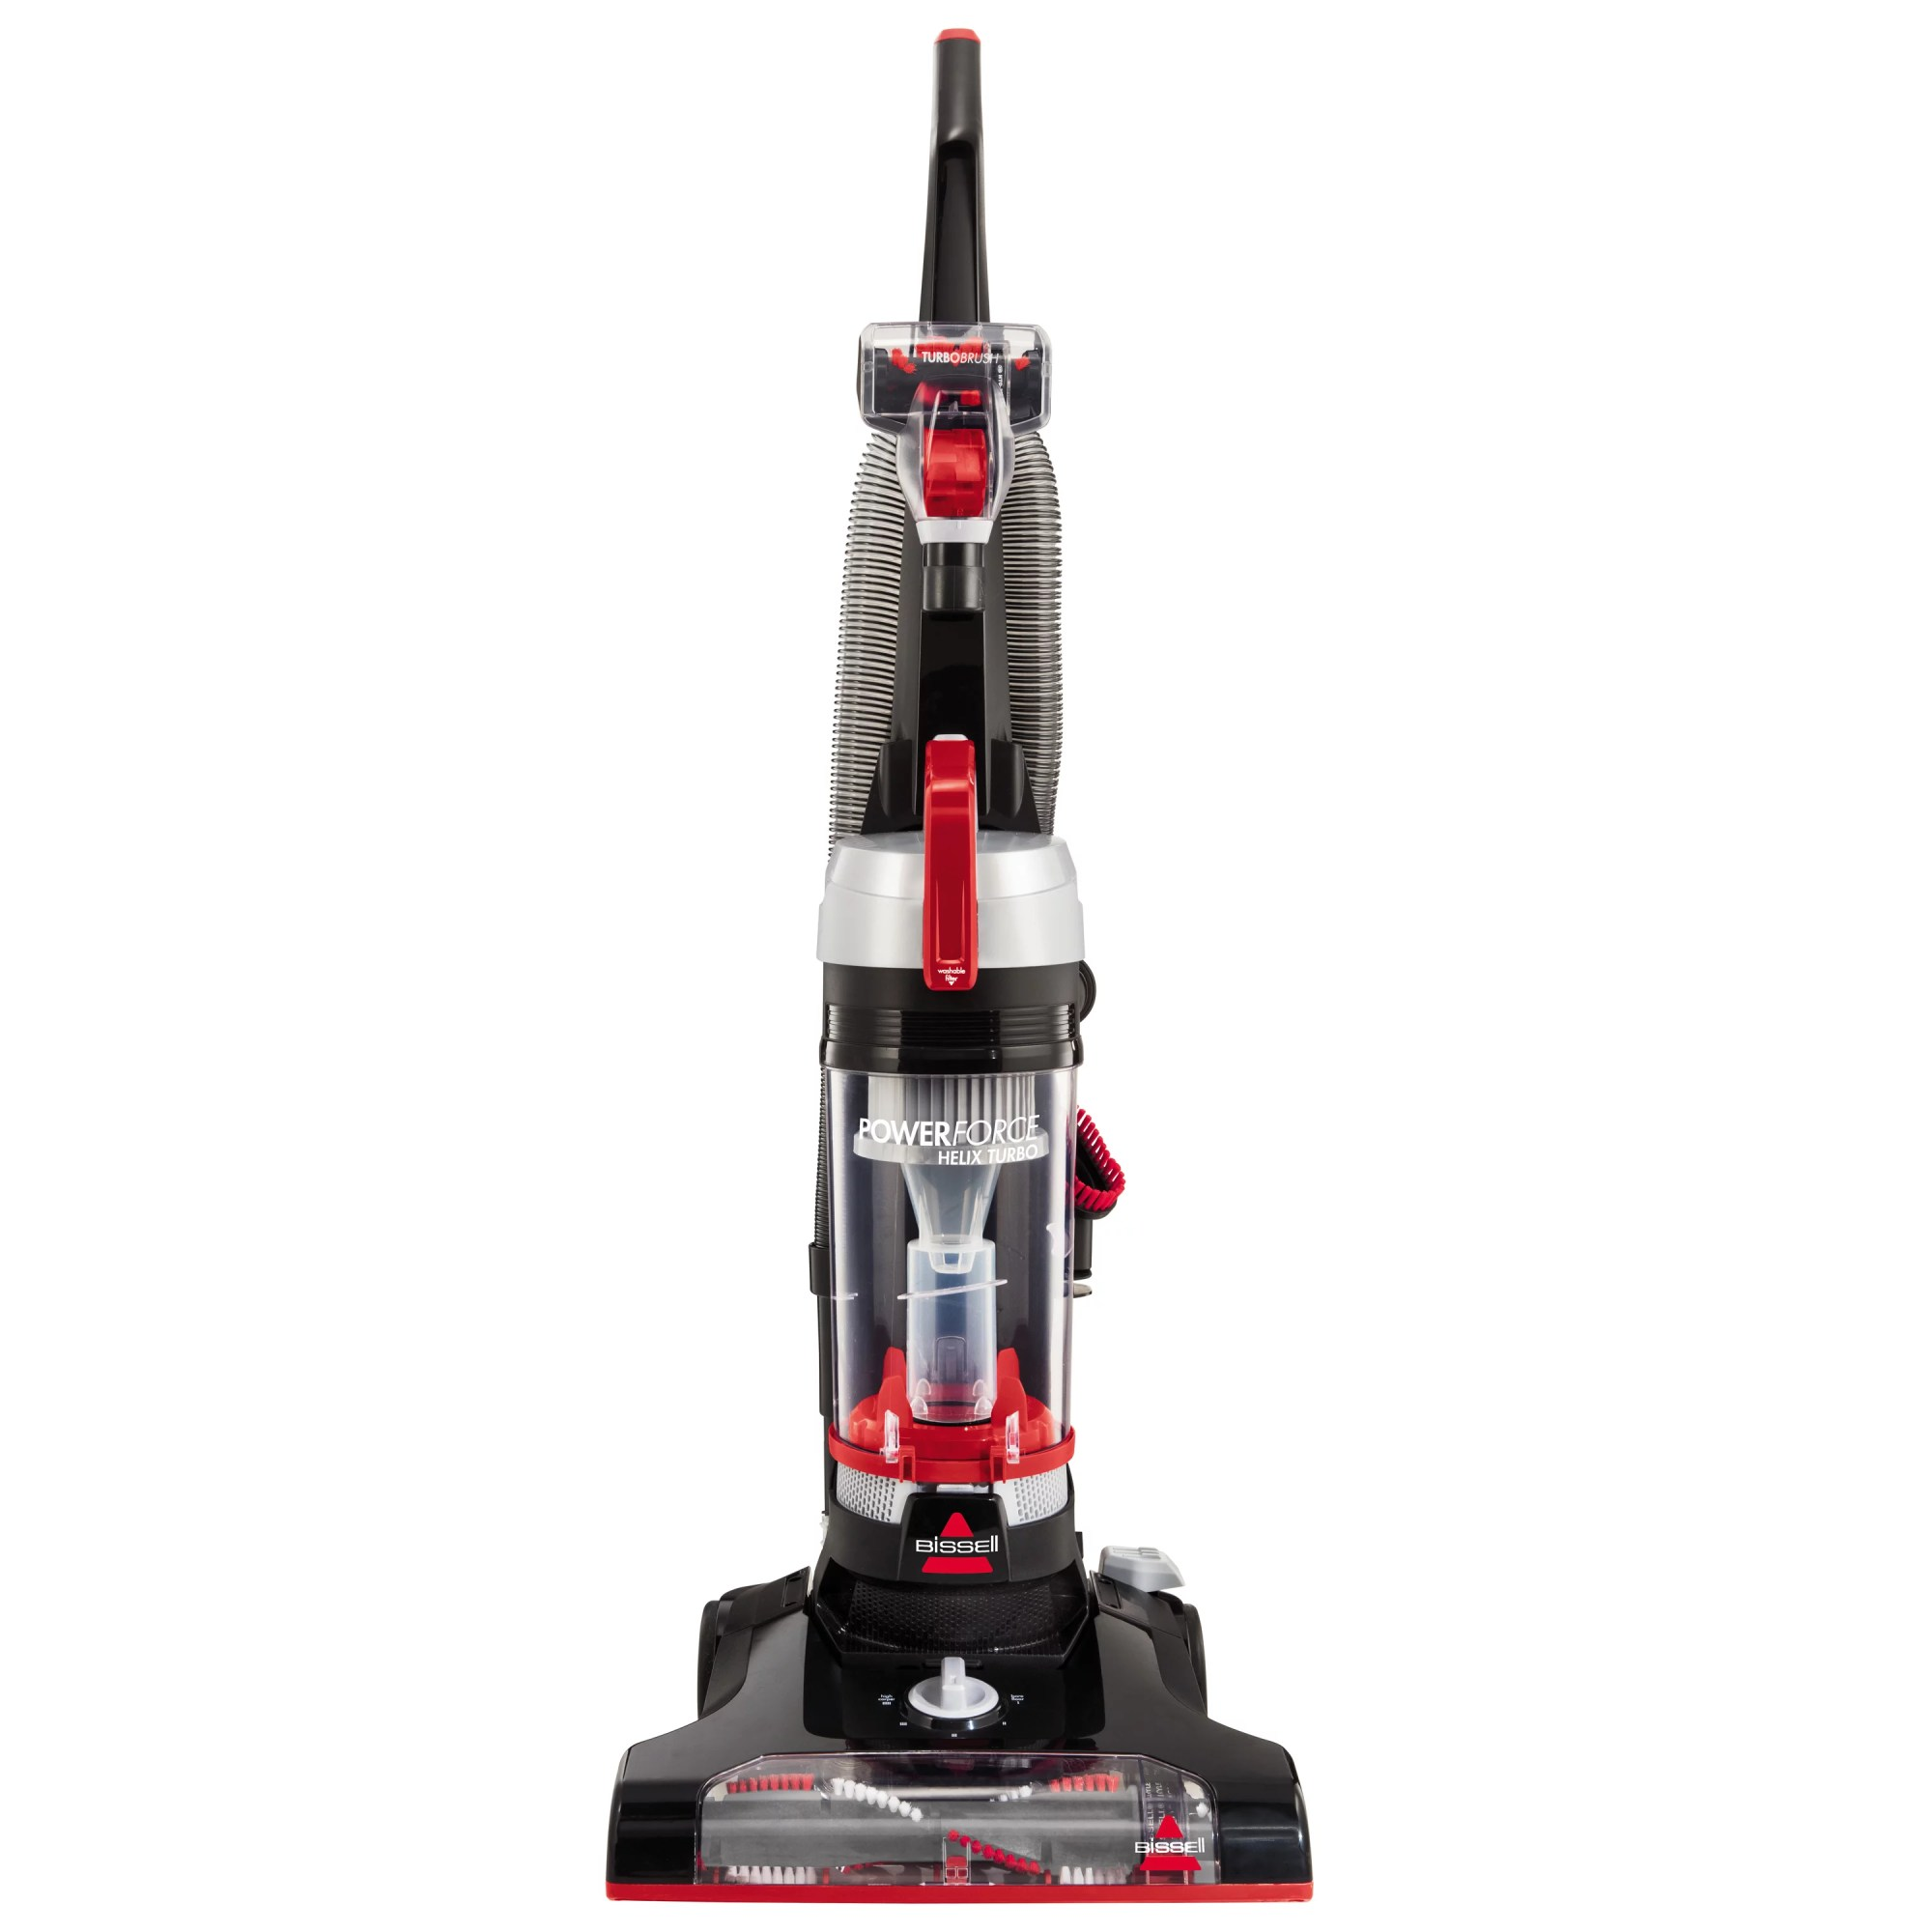 hight resolution of bissell powerforce helix turbo bagless vacuum new version of 1701 2190 walmart com